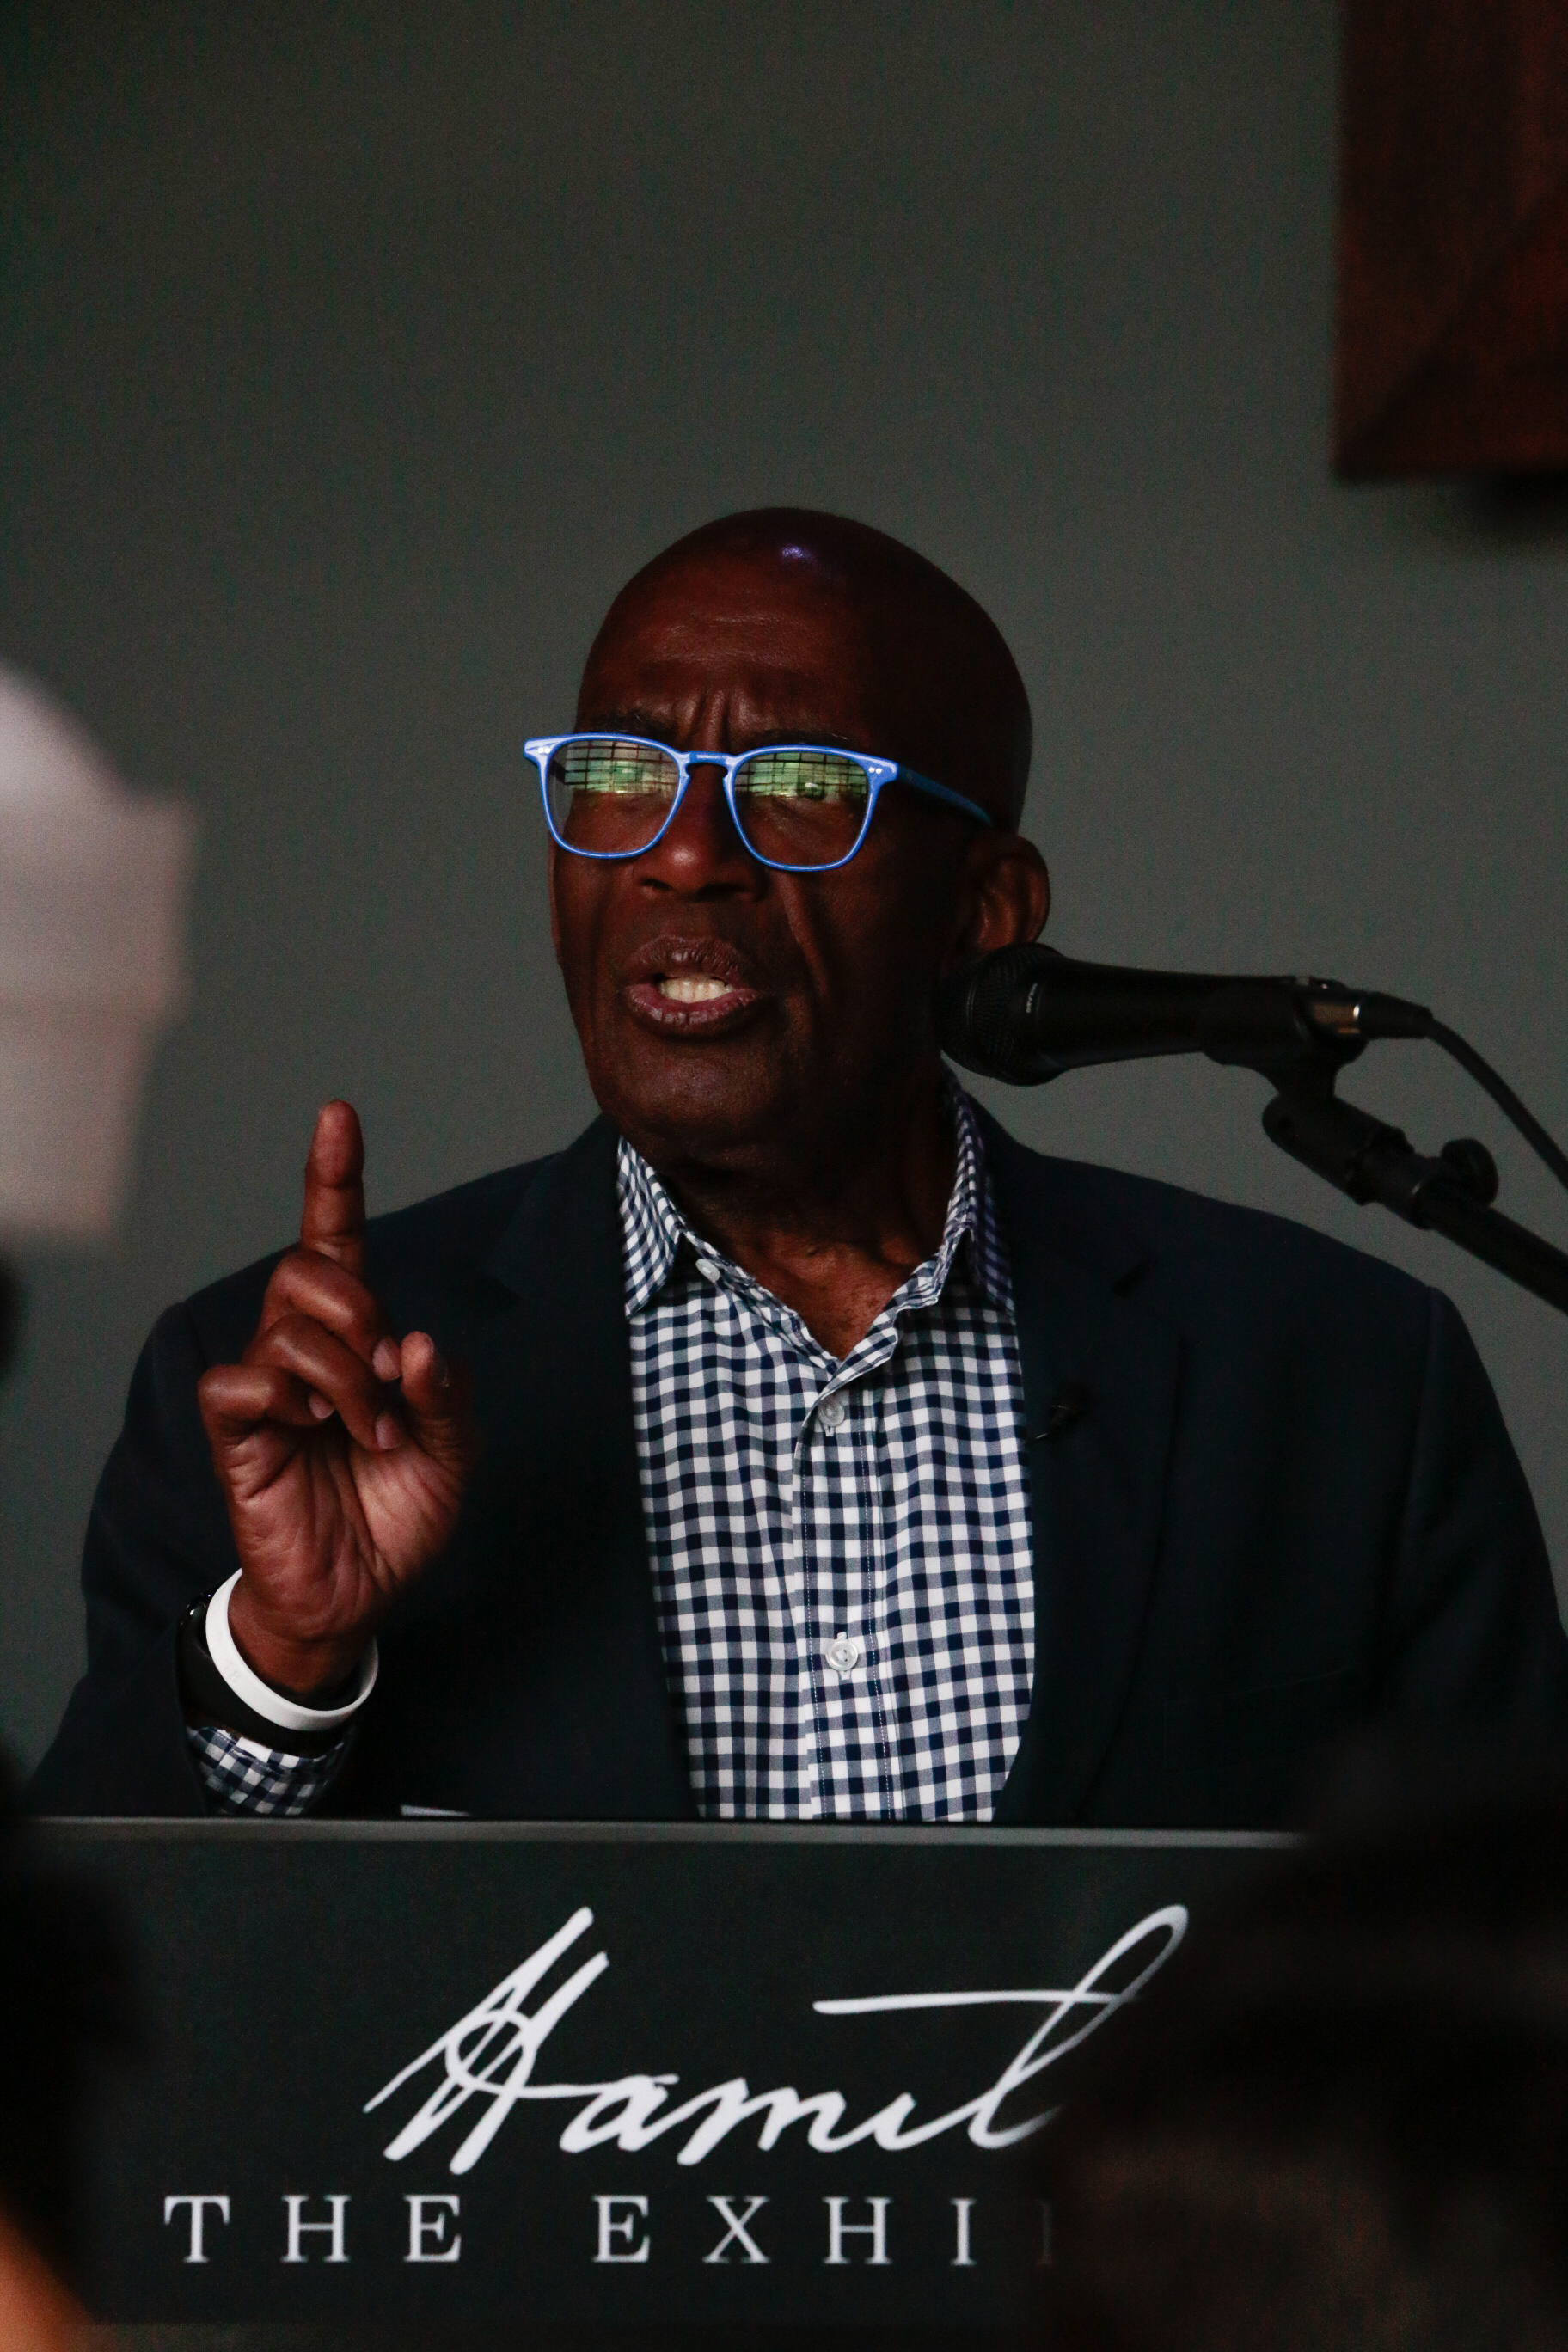 NBC Today's Al Roker at at the Hamilton Exhibition Press Conference and Ribbon Cutting, April 26th, 2019. Photo by Mary Crylen.